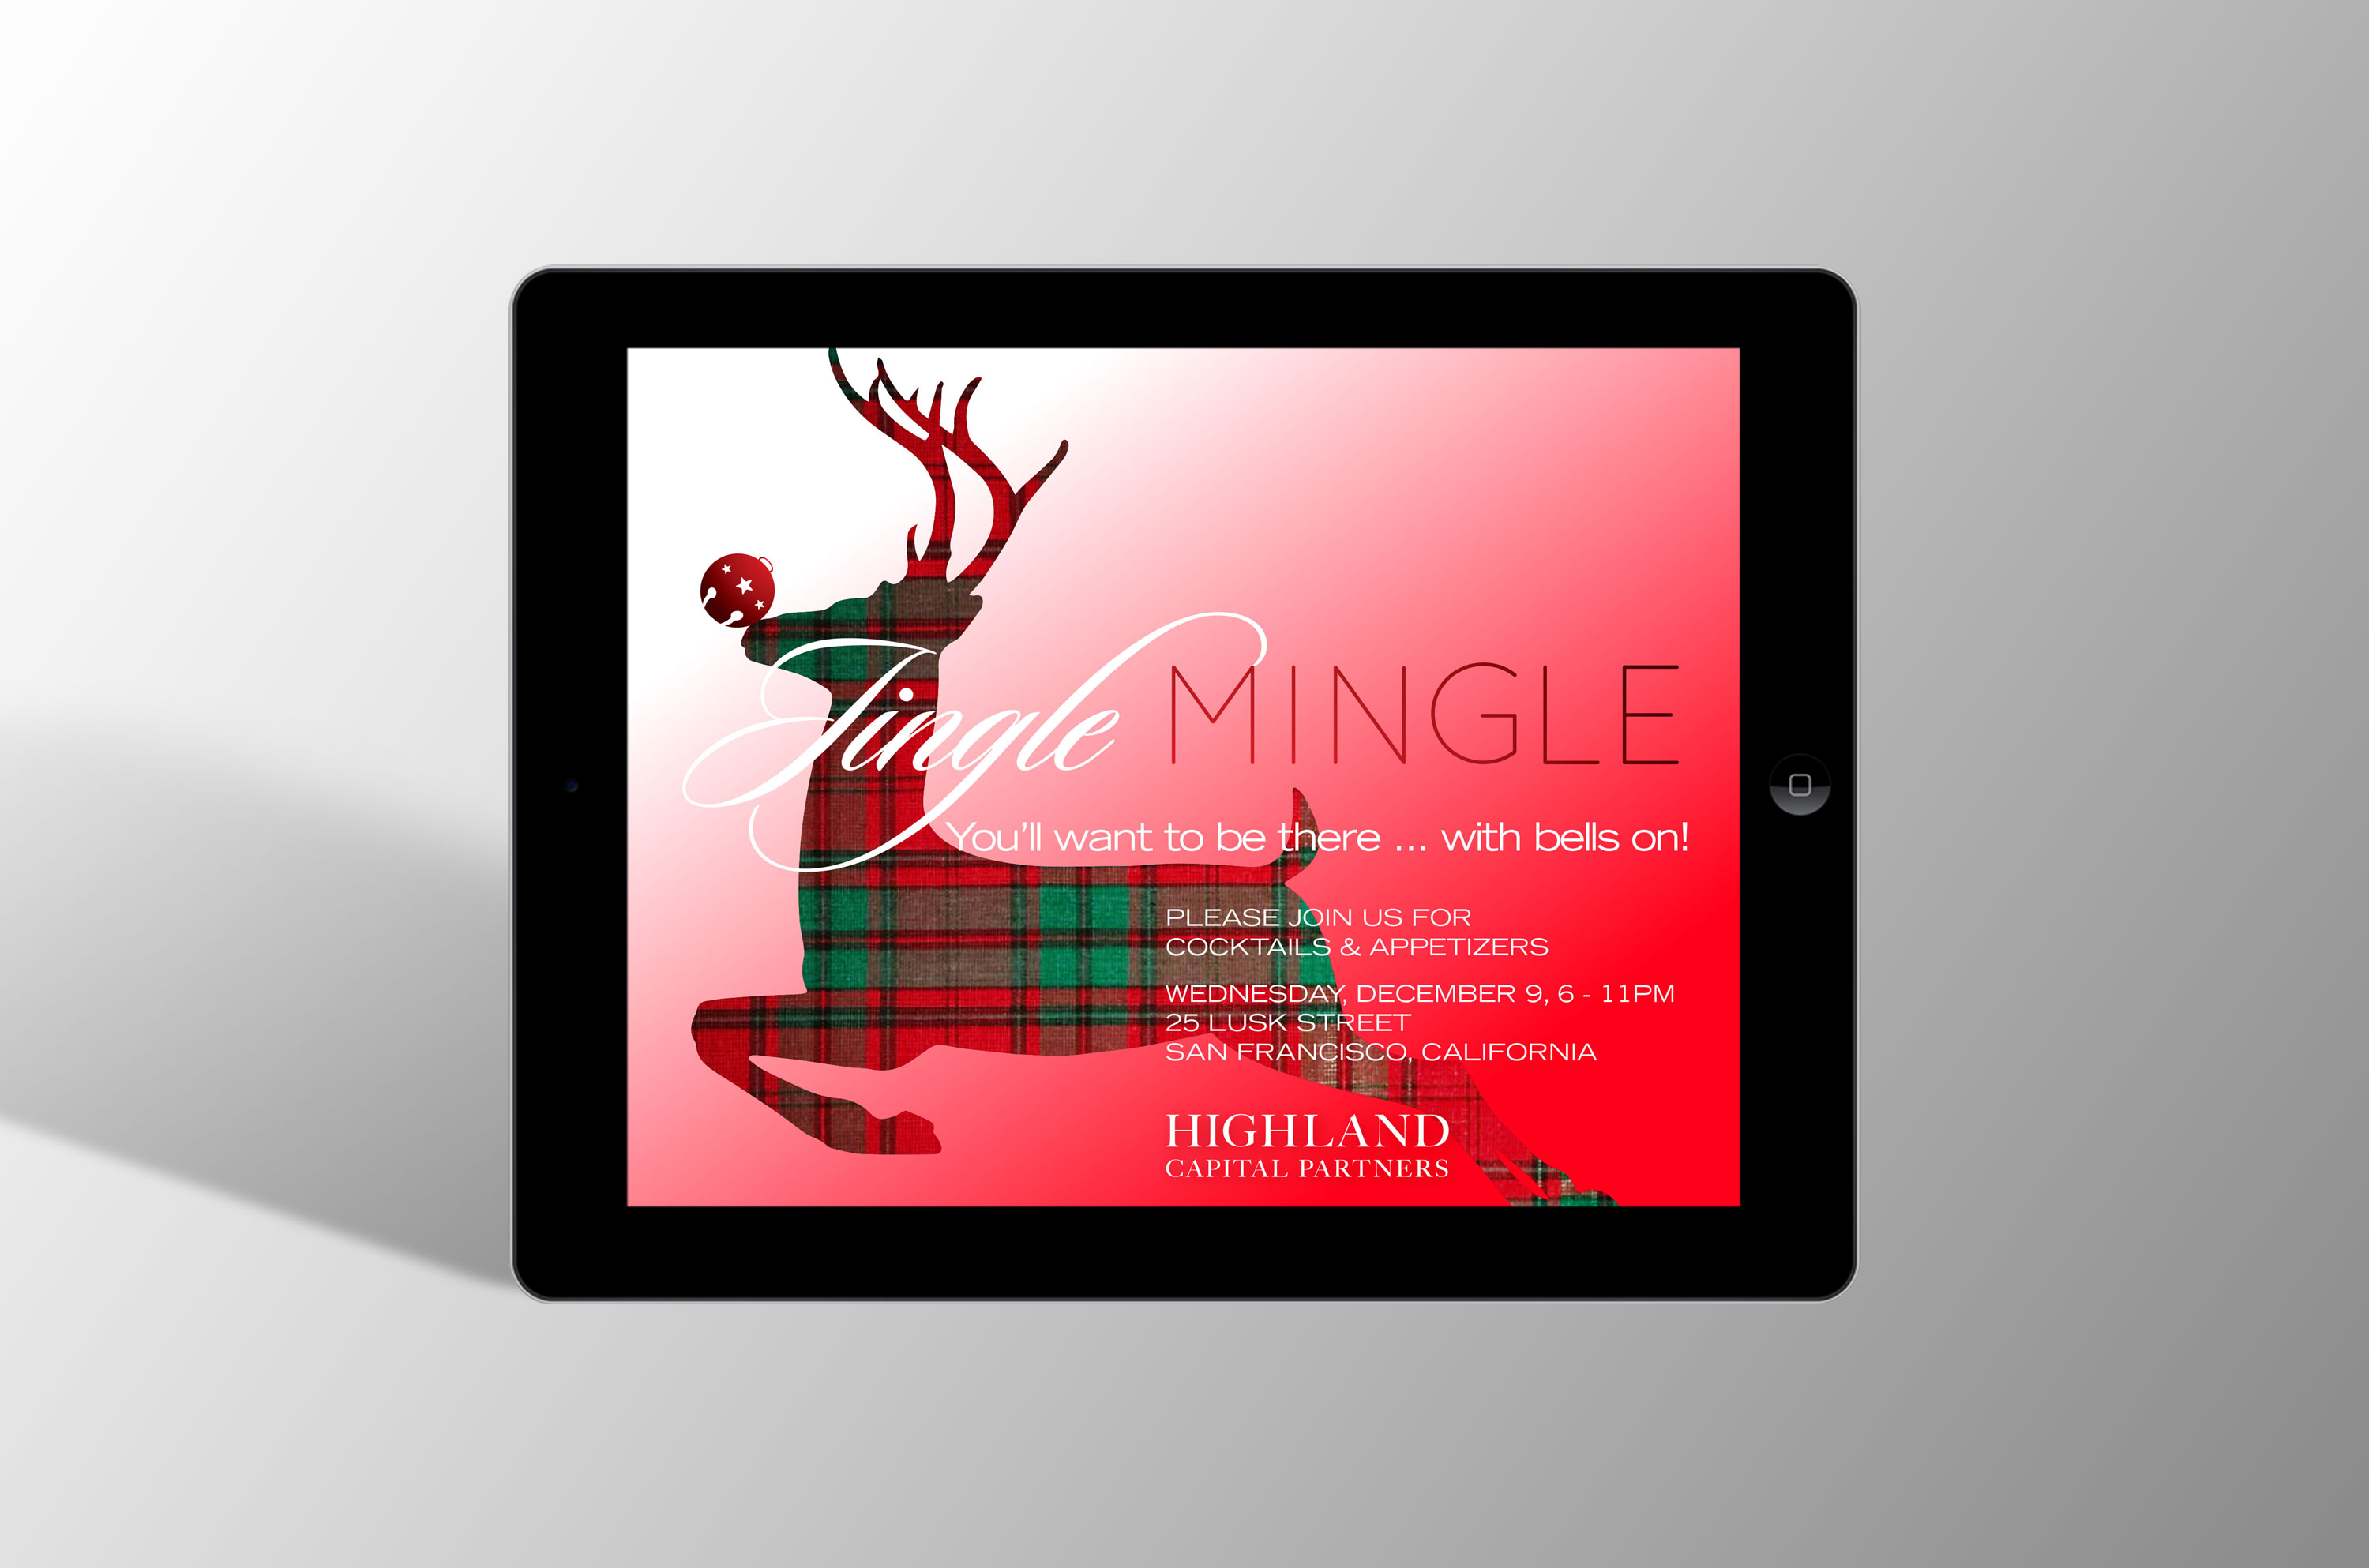 Second Jingle Mingle Invitation